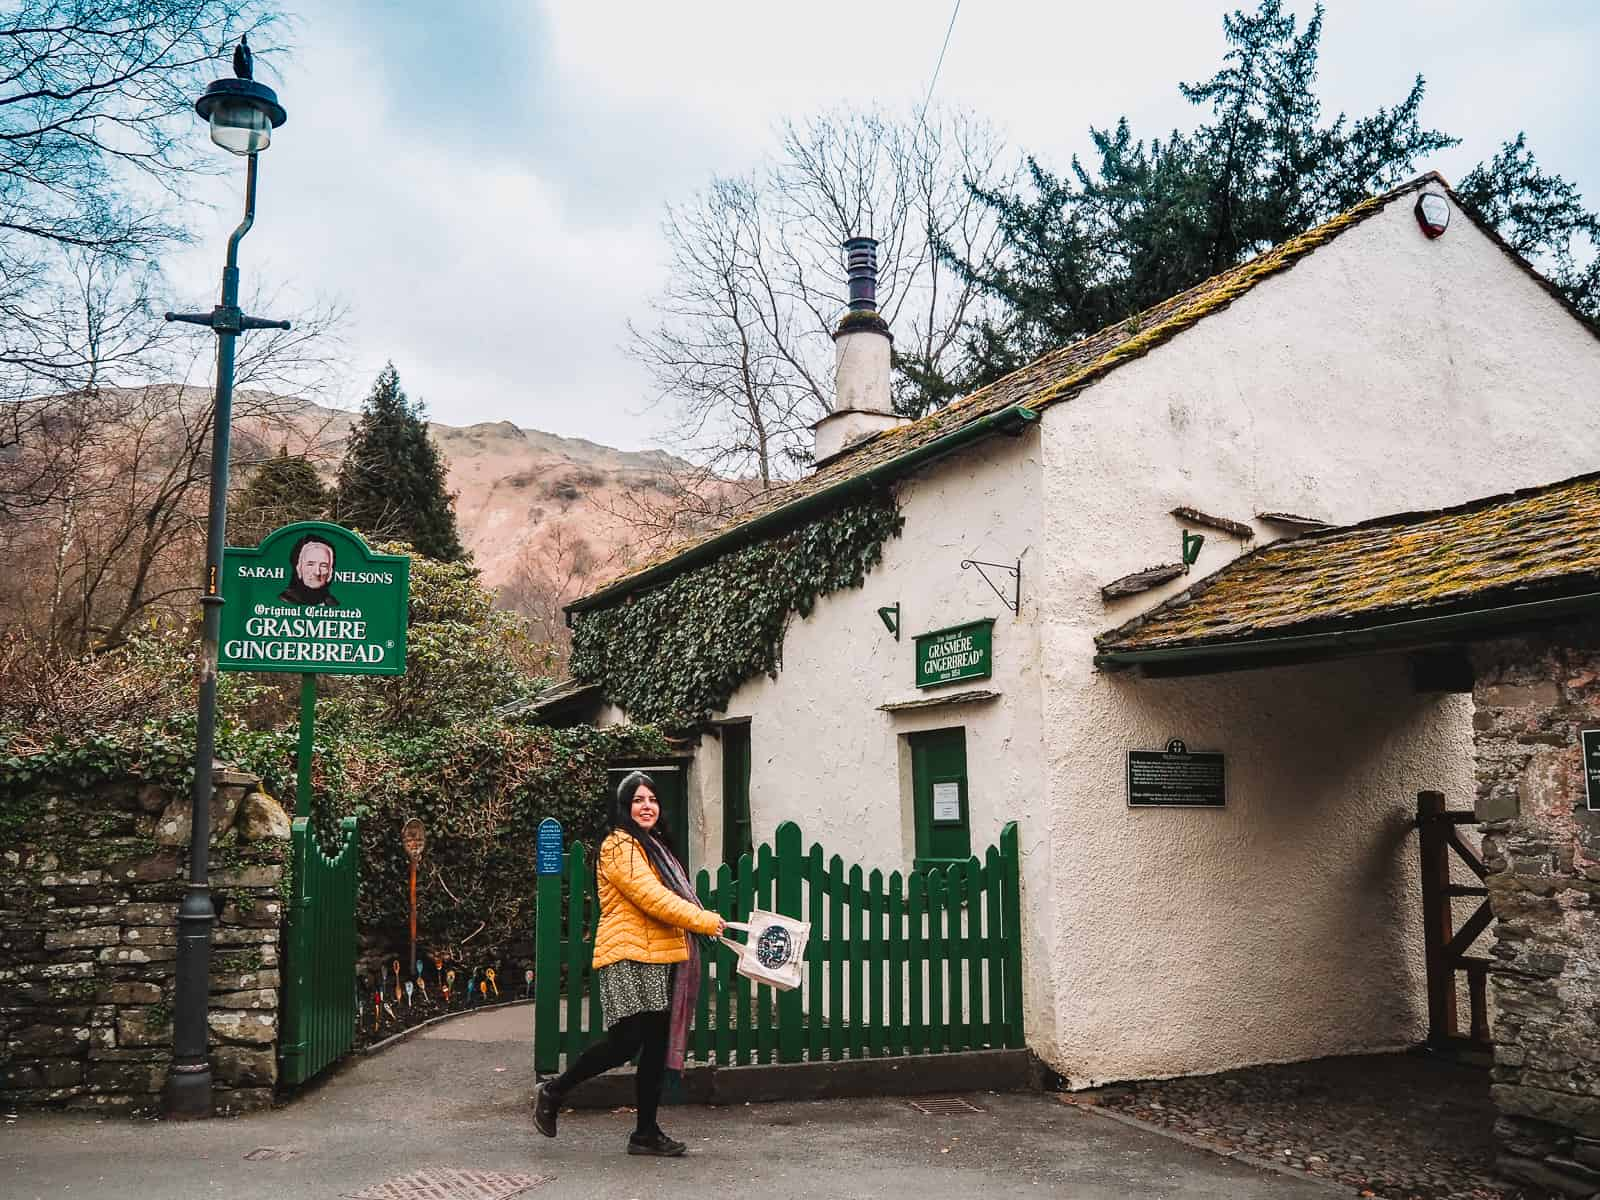 Sarah Nelson's Grasmere Gingerbread shop history